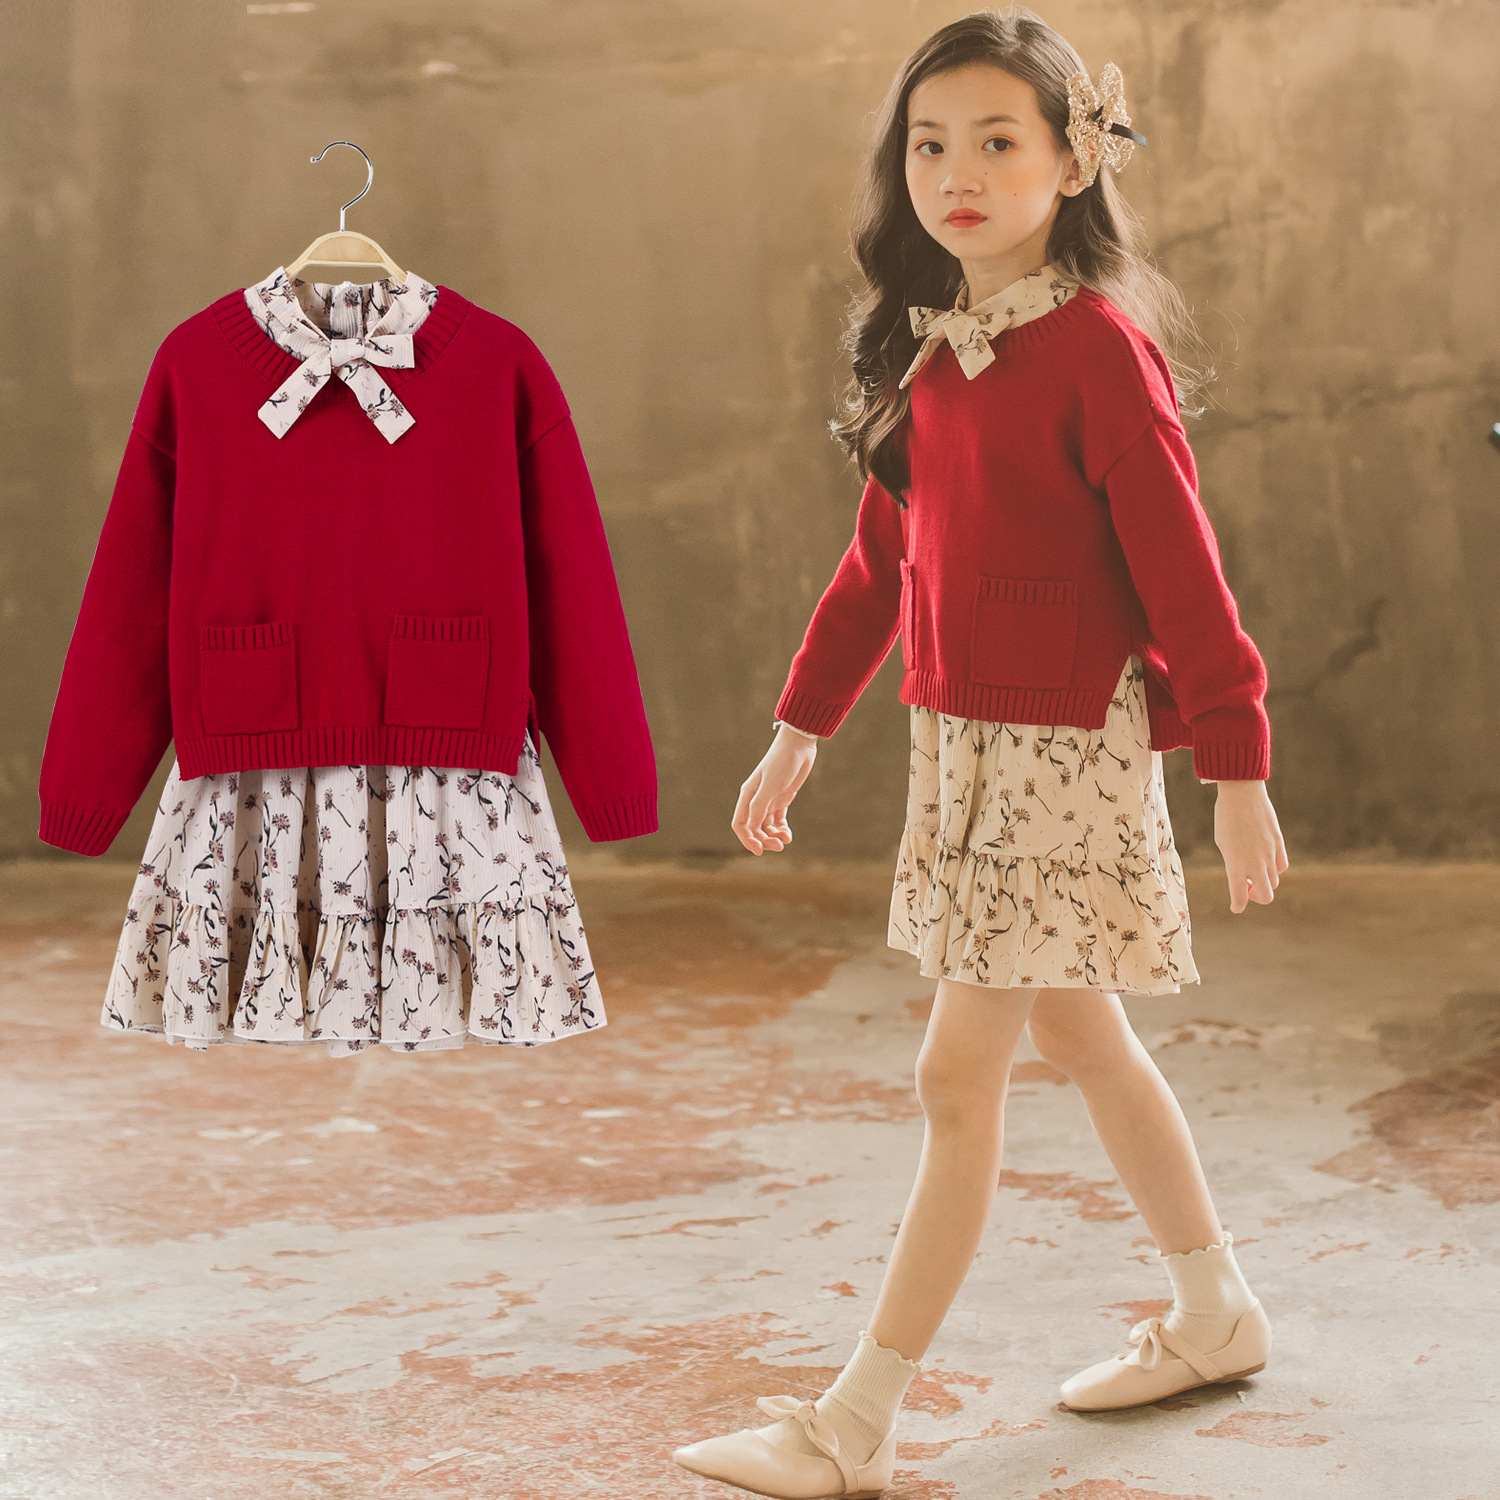 Little Girls Sweater Dress Two-pieces Floral Print Long Sleeve Chiffon Dress Autumn Winter Kids Outfit age 4 5 6 7 8 9 10 years letter print long sleeve sweatshirt dress page 8